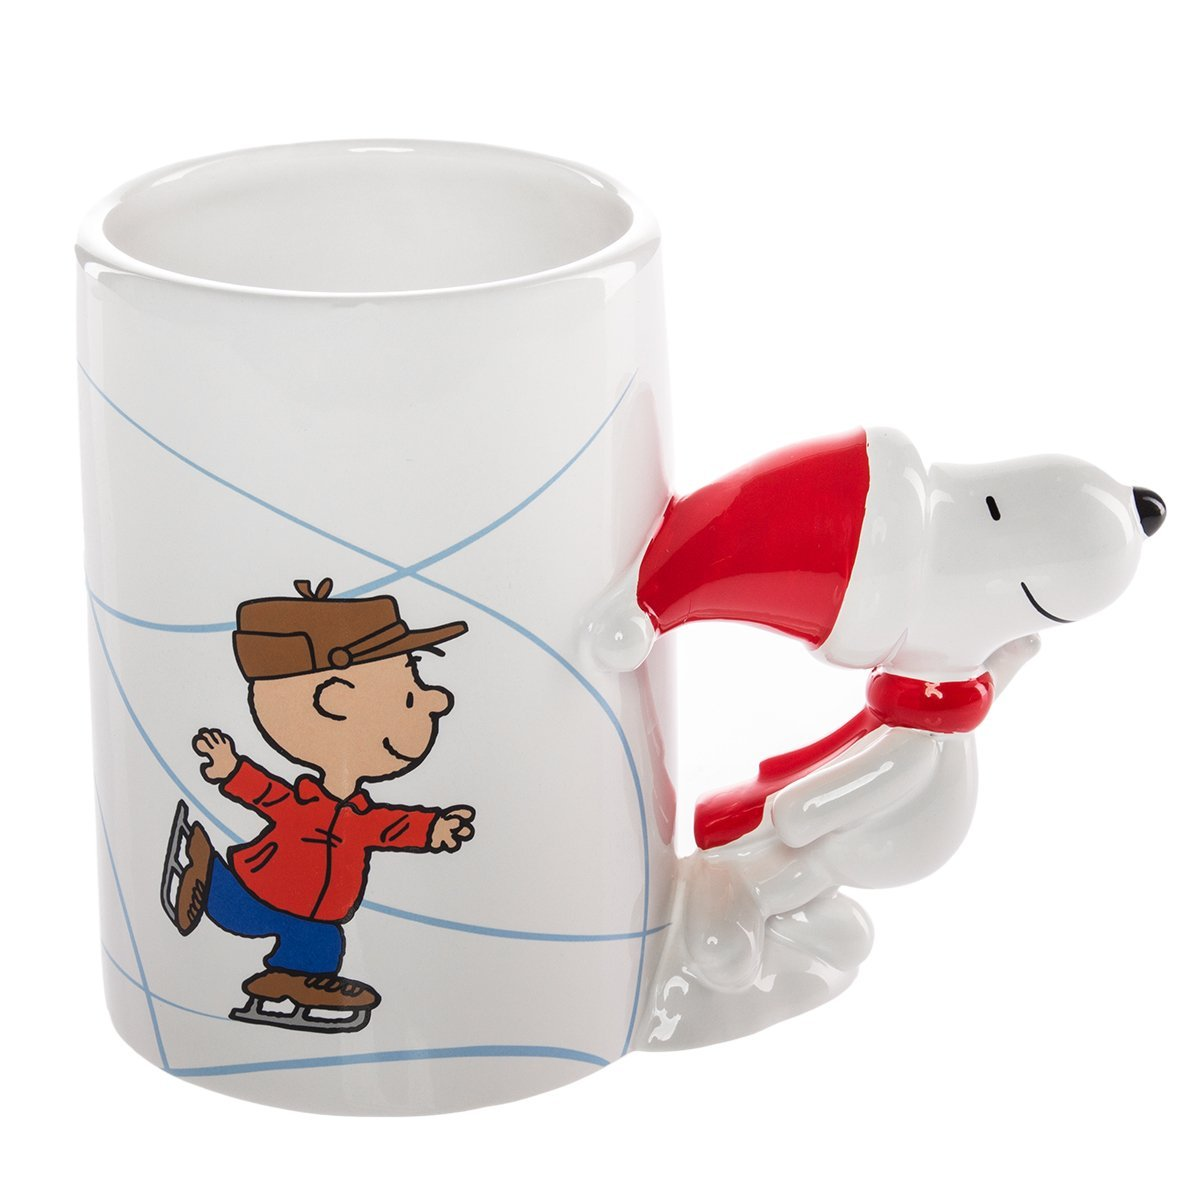 Coffee mugs snoopy charlie brown woodstock peanuts Top 10 coffee mugs